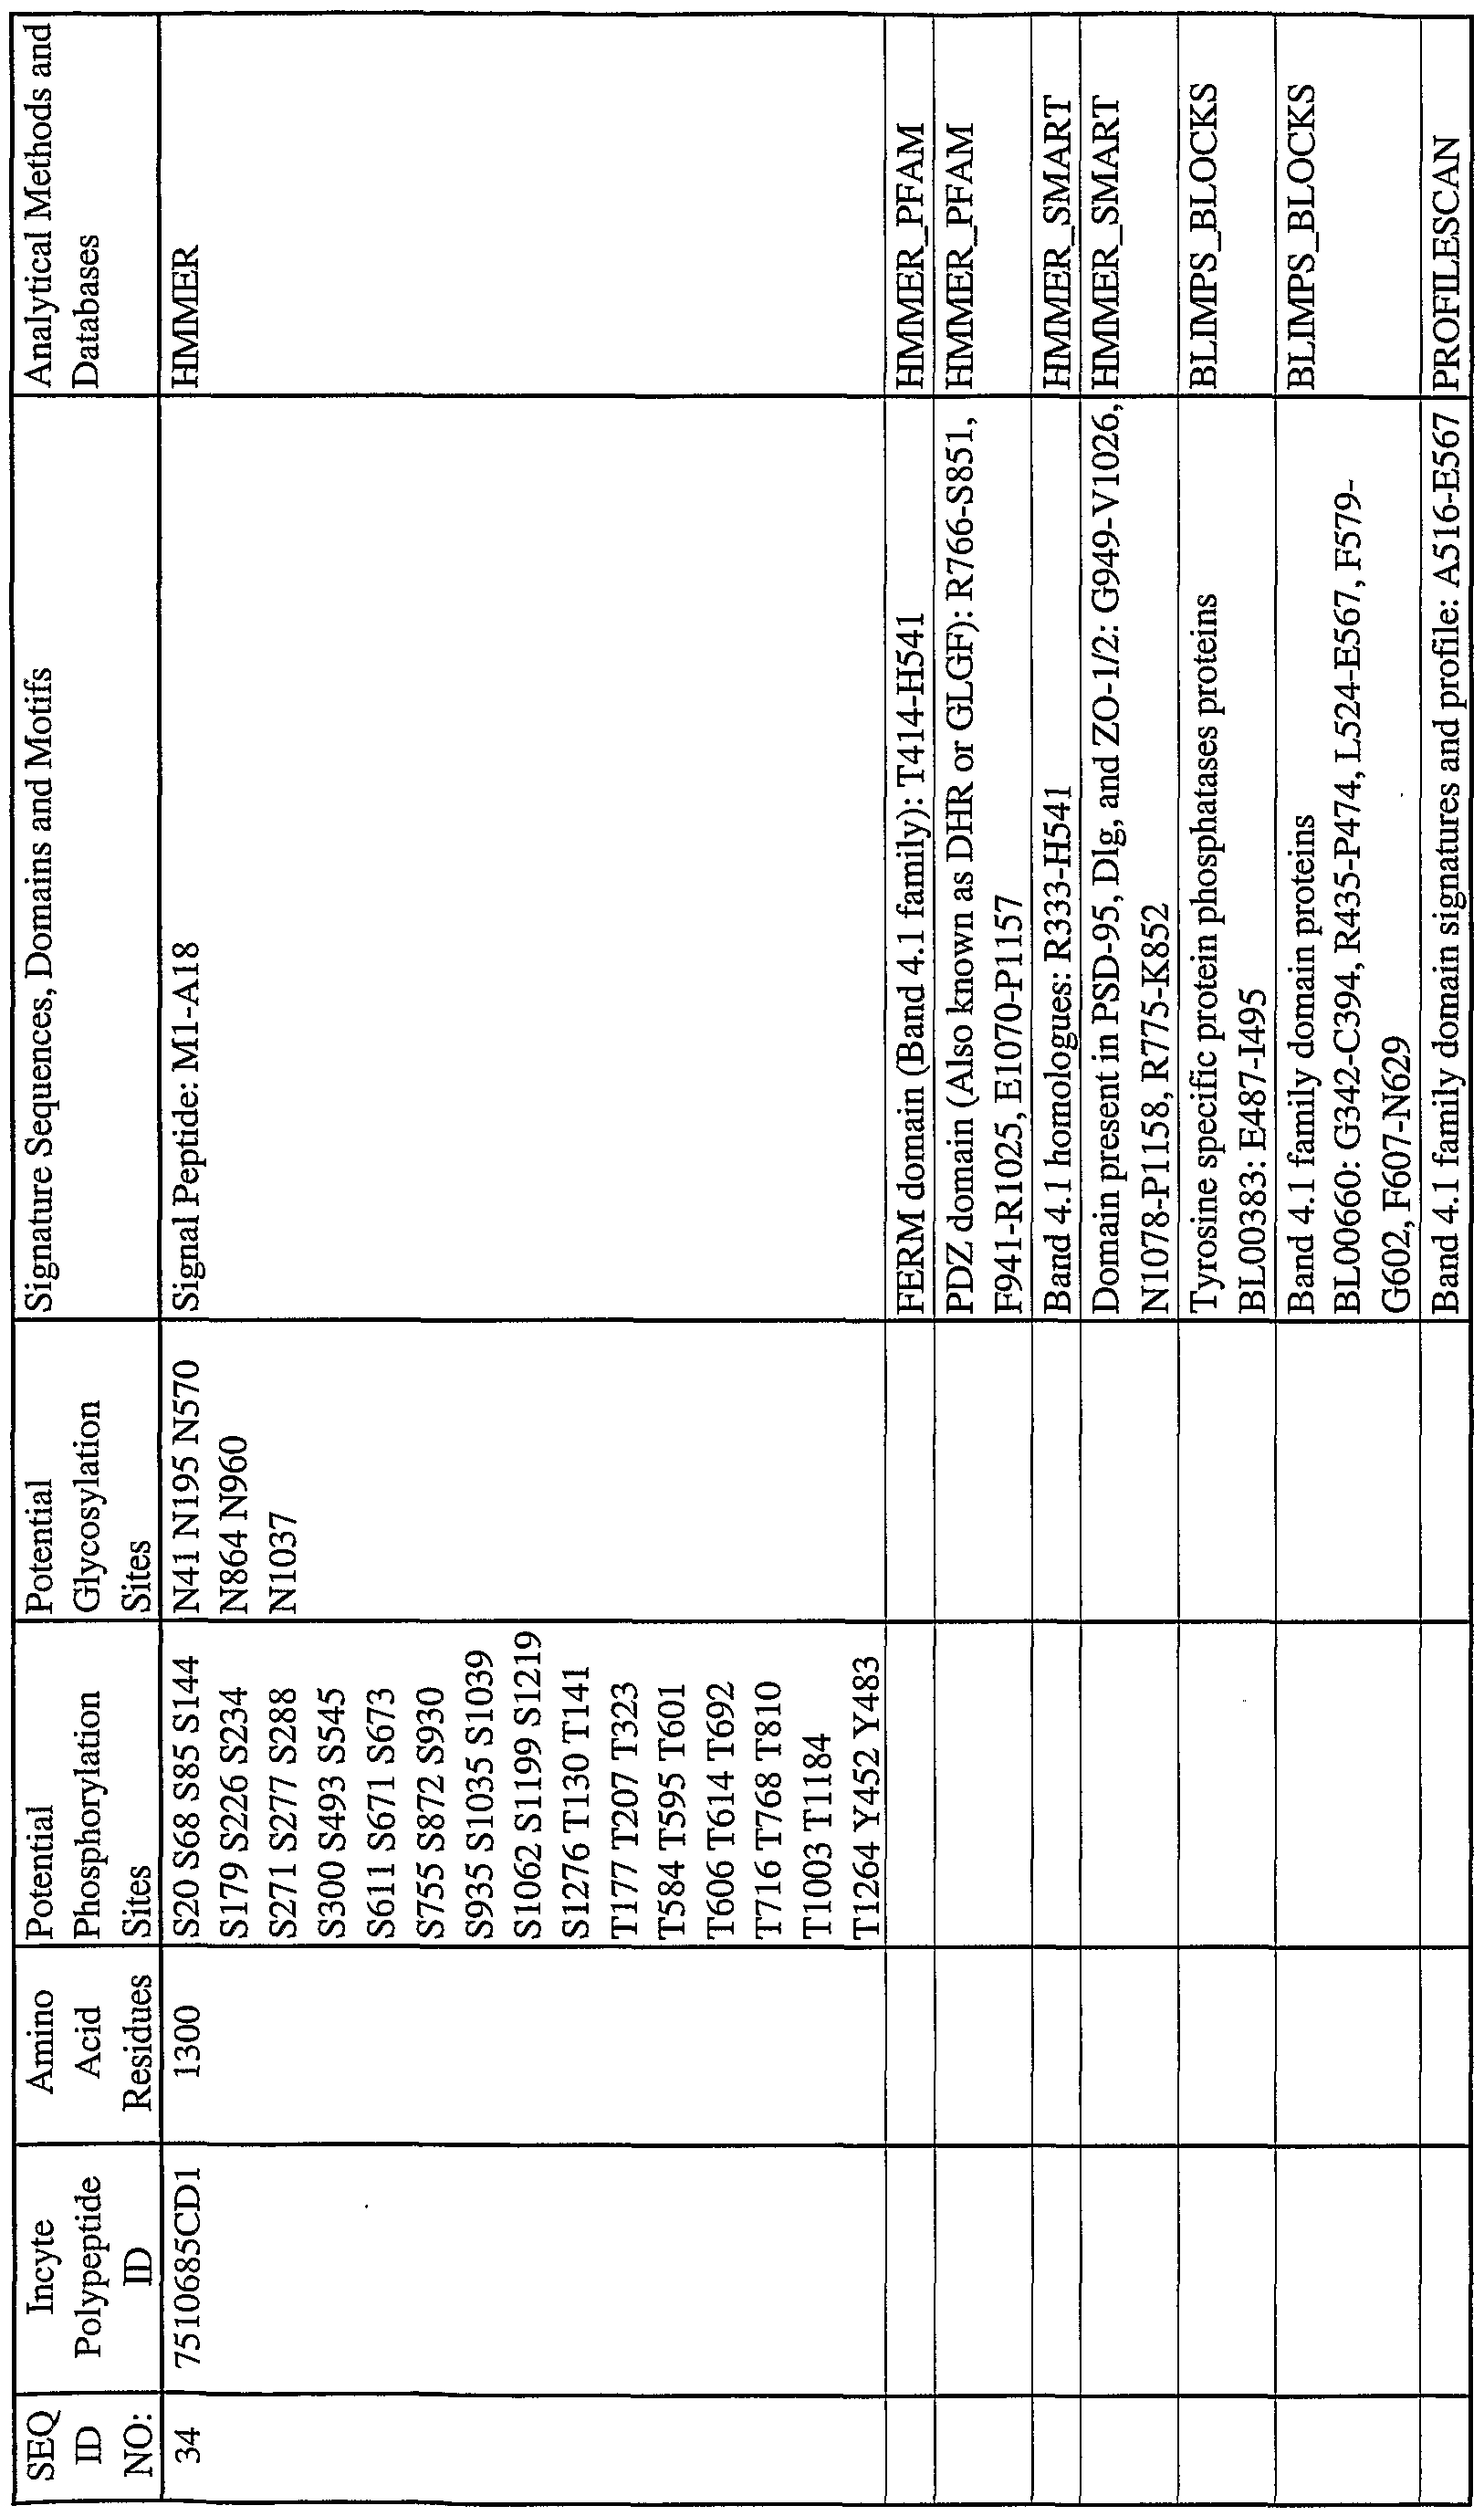 WO2003080805A2 - Kinases and phosphatases - Google Patents